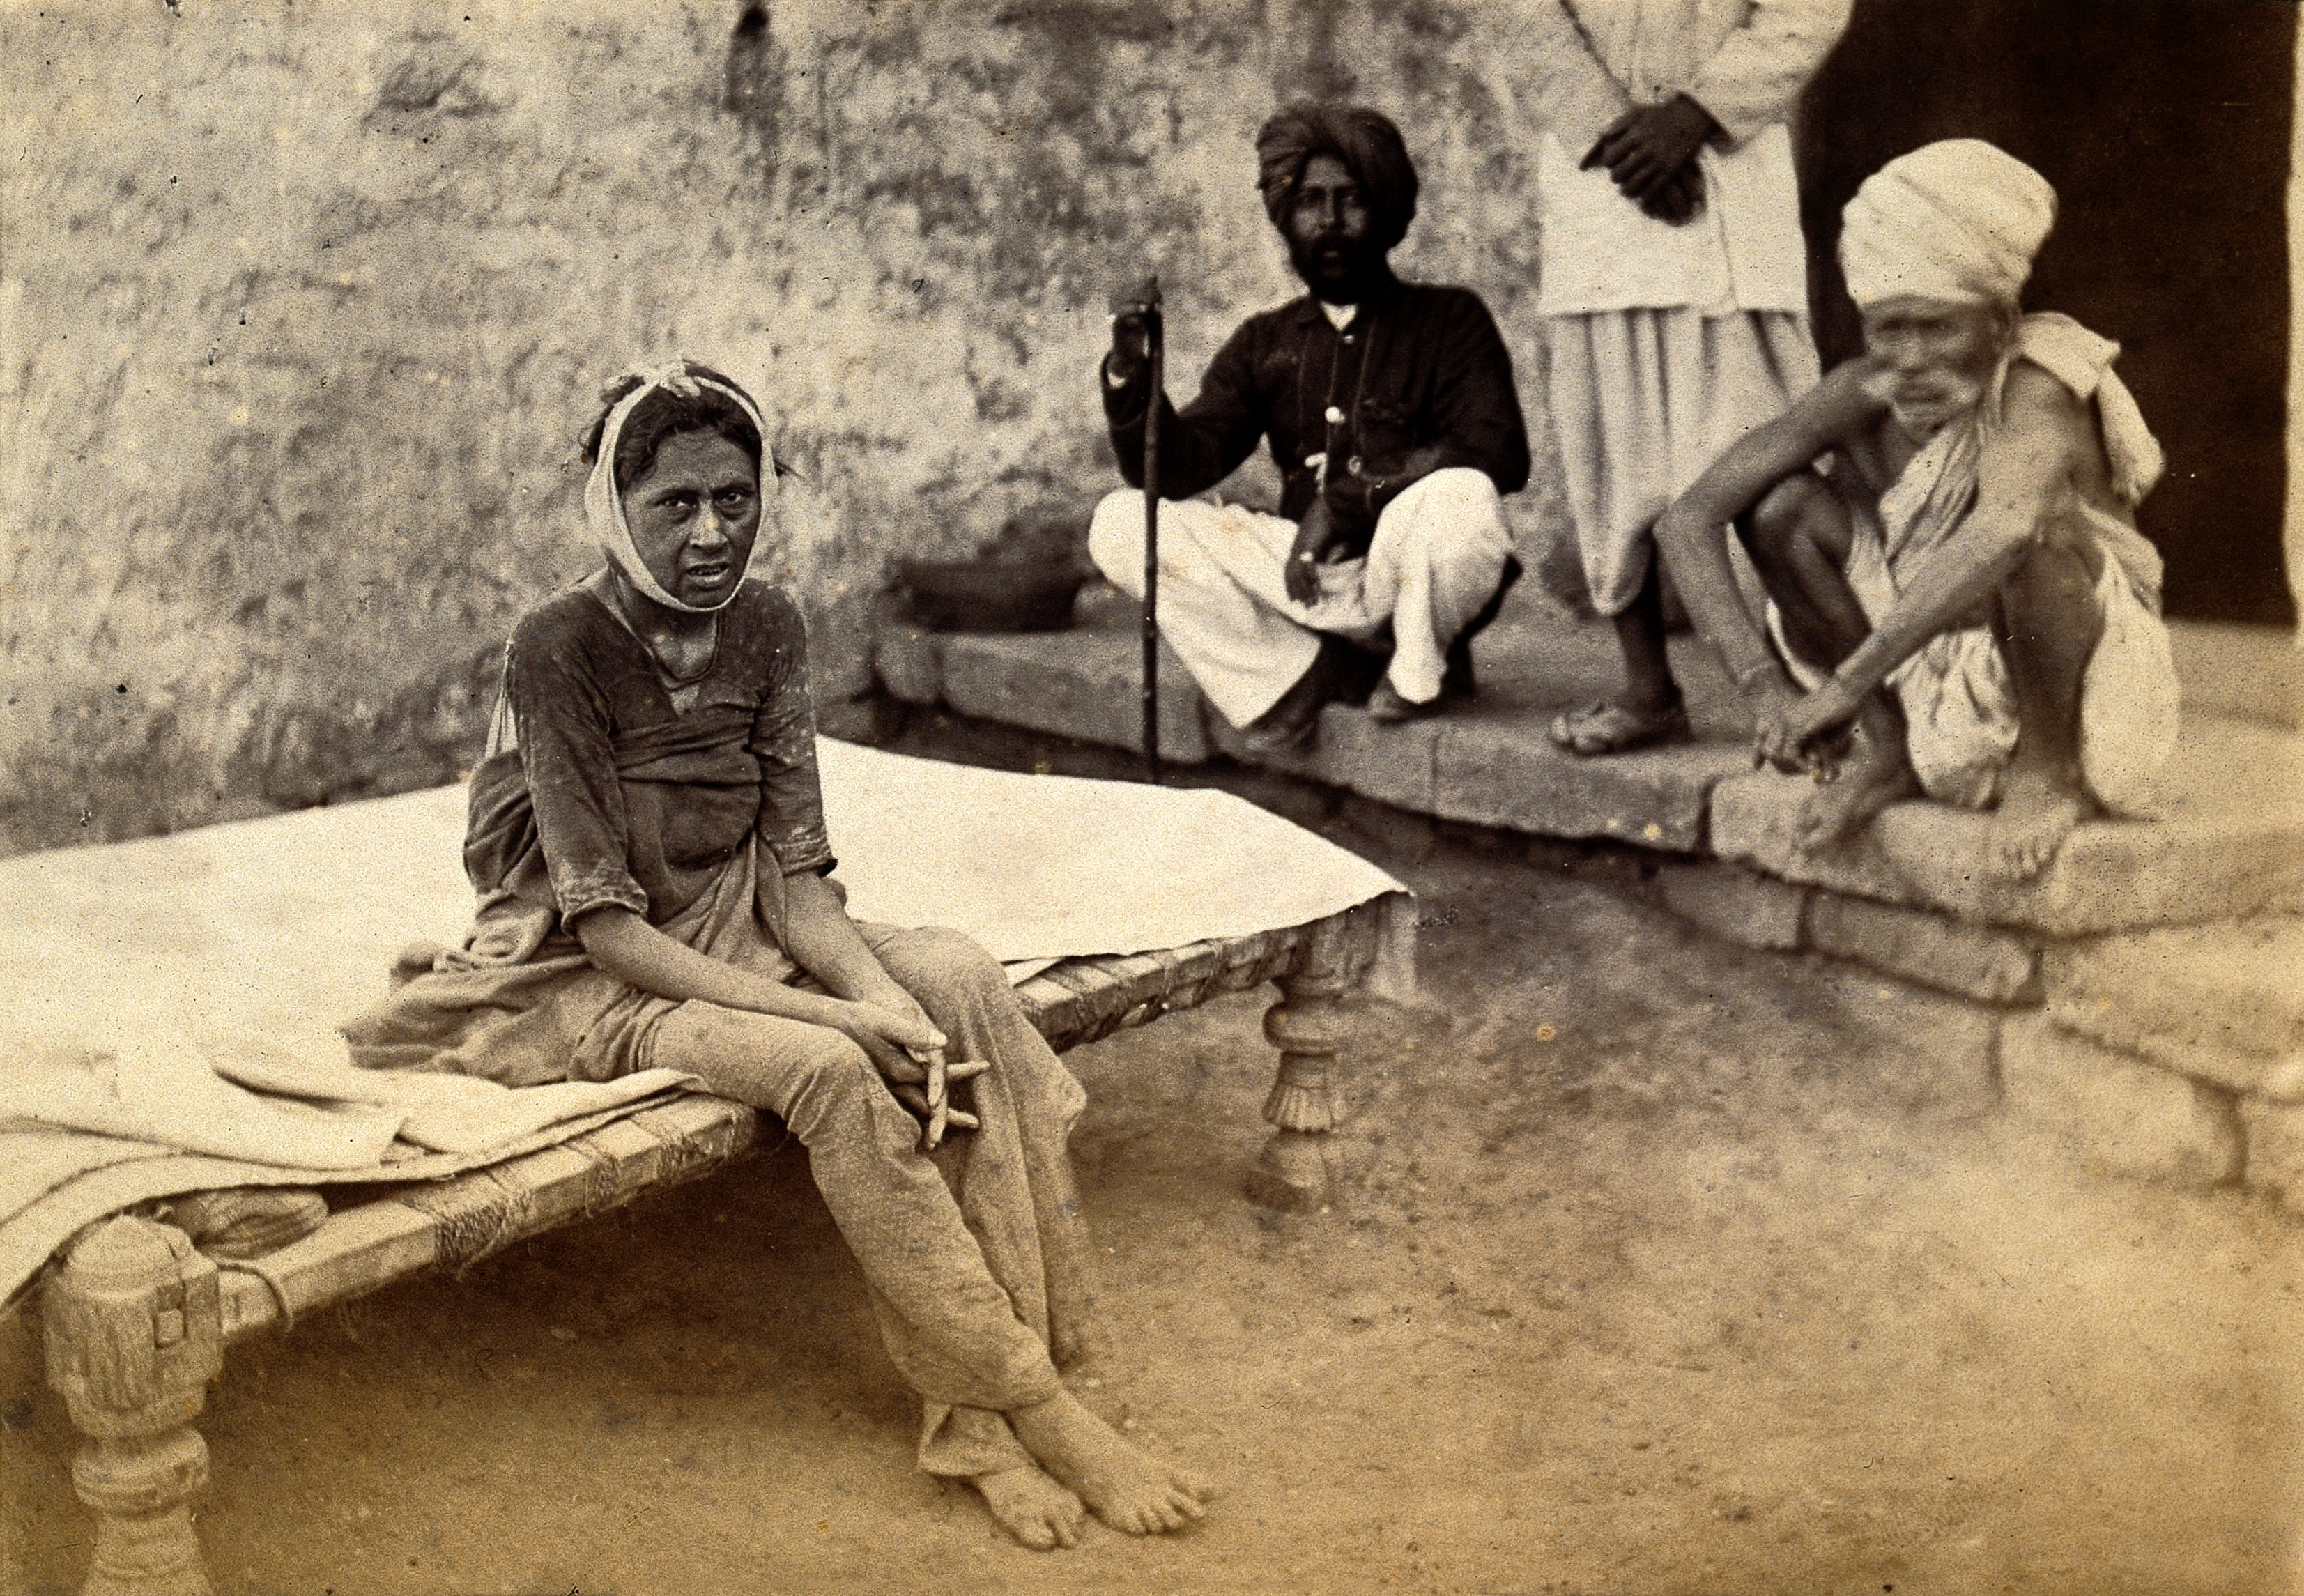 A patient in Karachi suffering bubonic plague in 1882 when the disease spread from Bombay. (Photo: Wellcome Library, London/Wikimedia Commons)